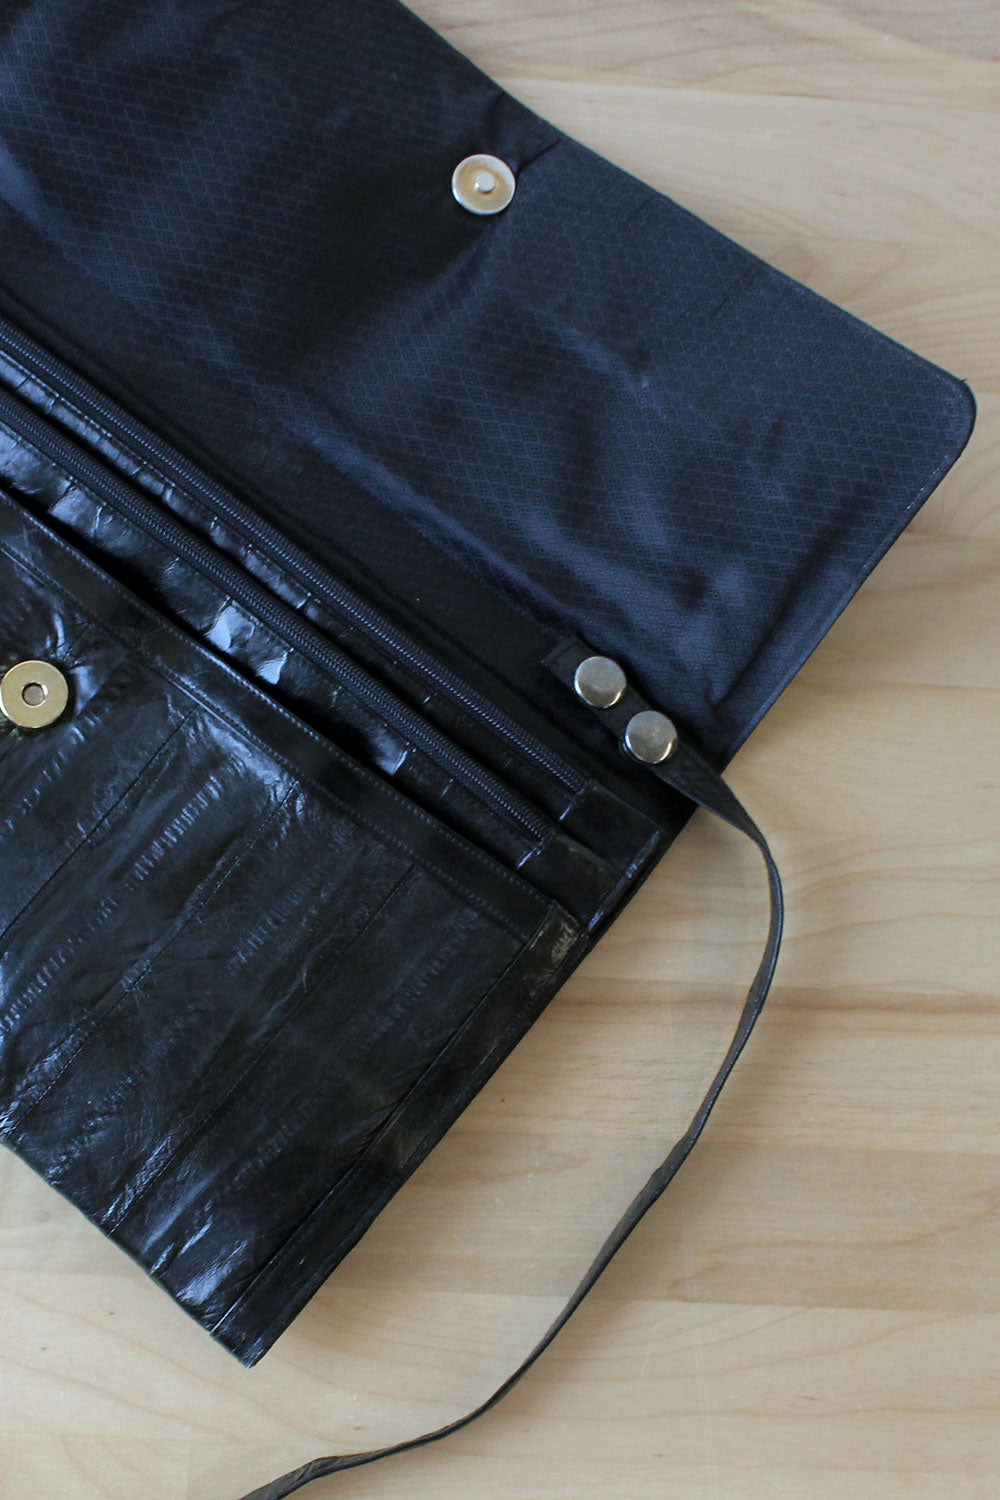 Jet Eelskin Convertible Bag